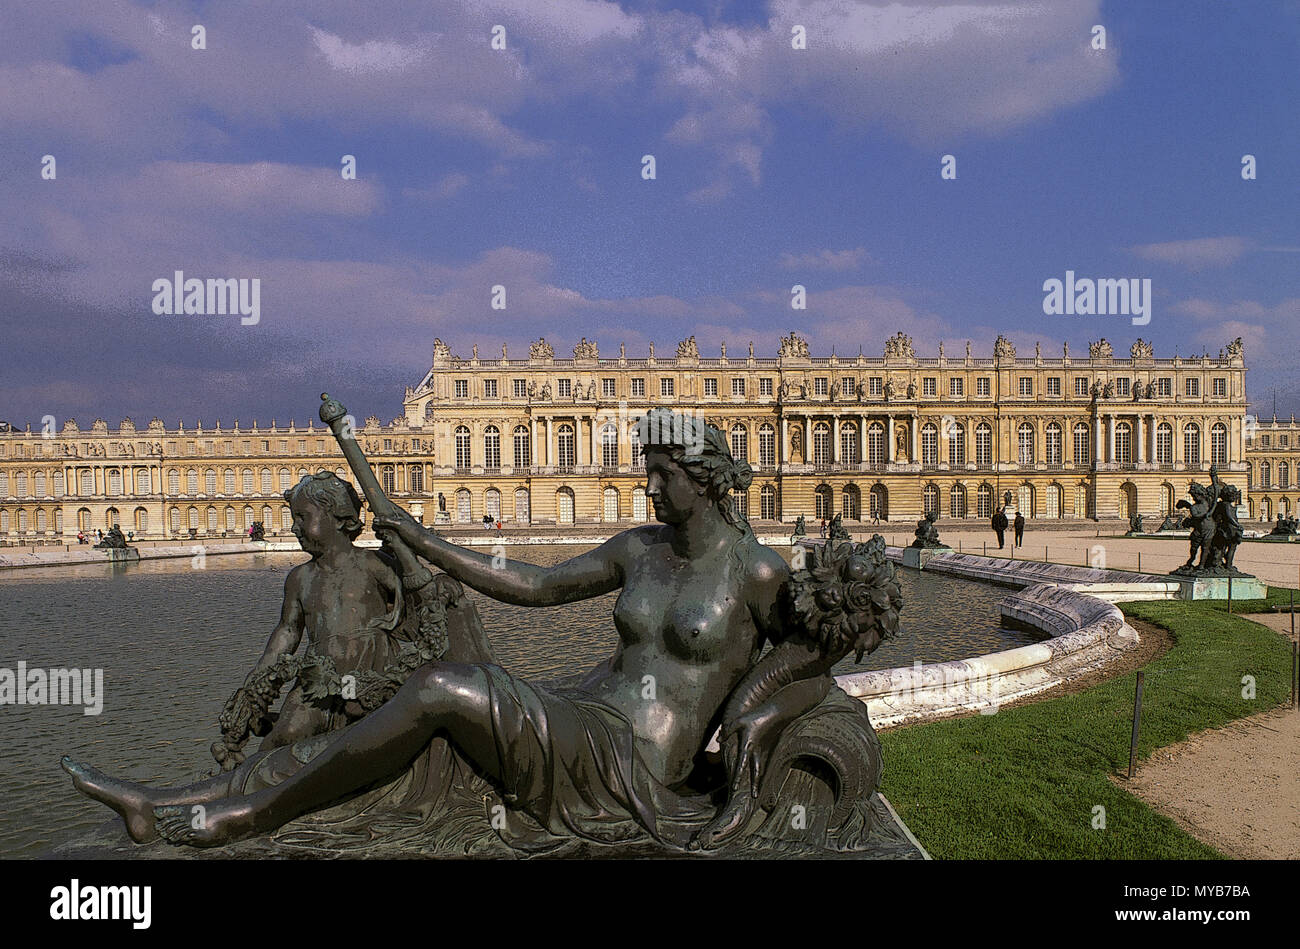 Versailles: Palace Gardens,Water Parterre, personification of the river Marne by Le Hongre (1685-1687), with west elevation beyond, Versailles, France Stock Photo